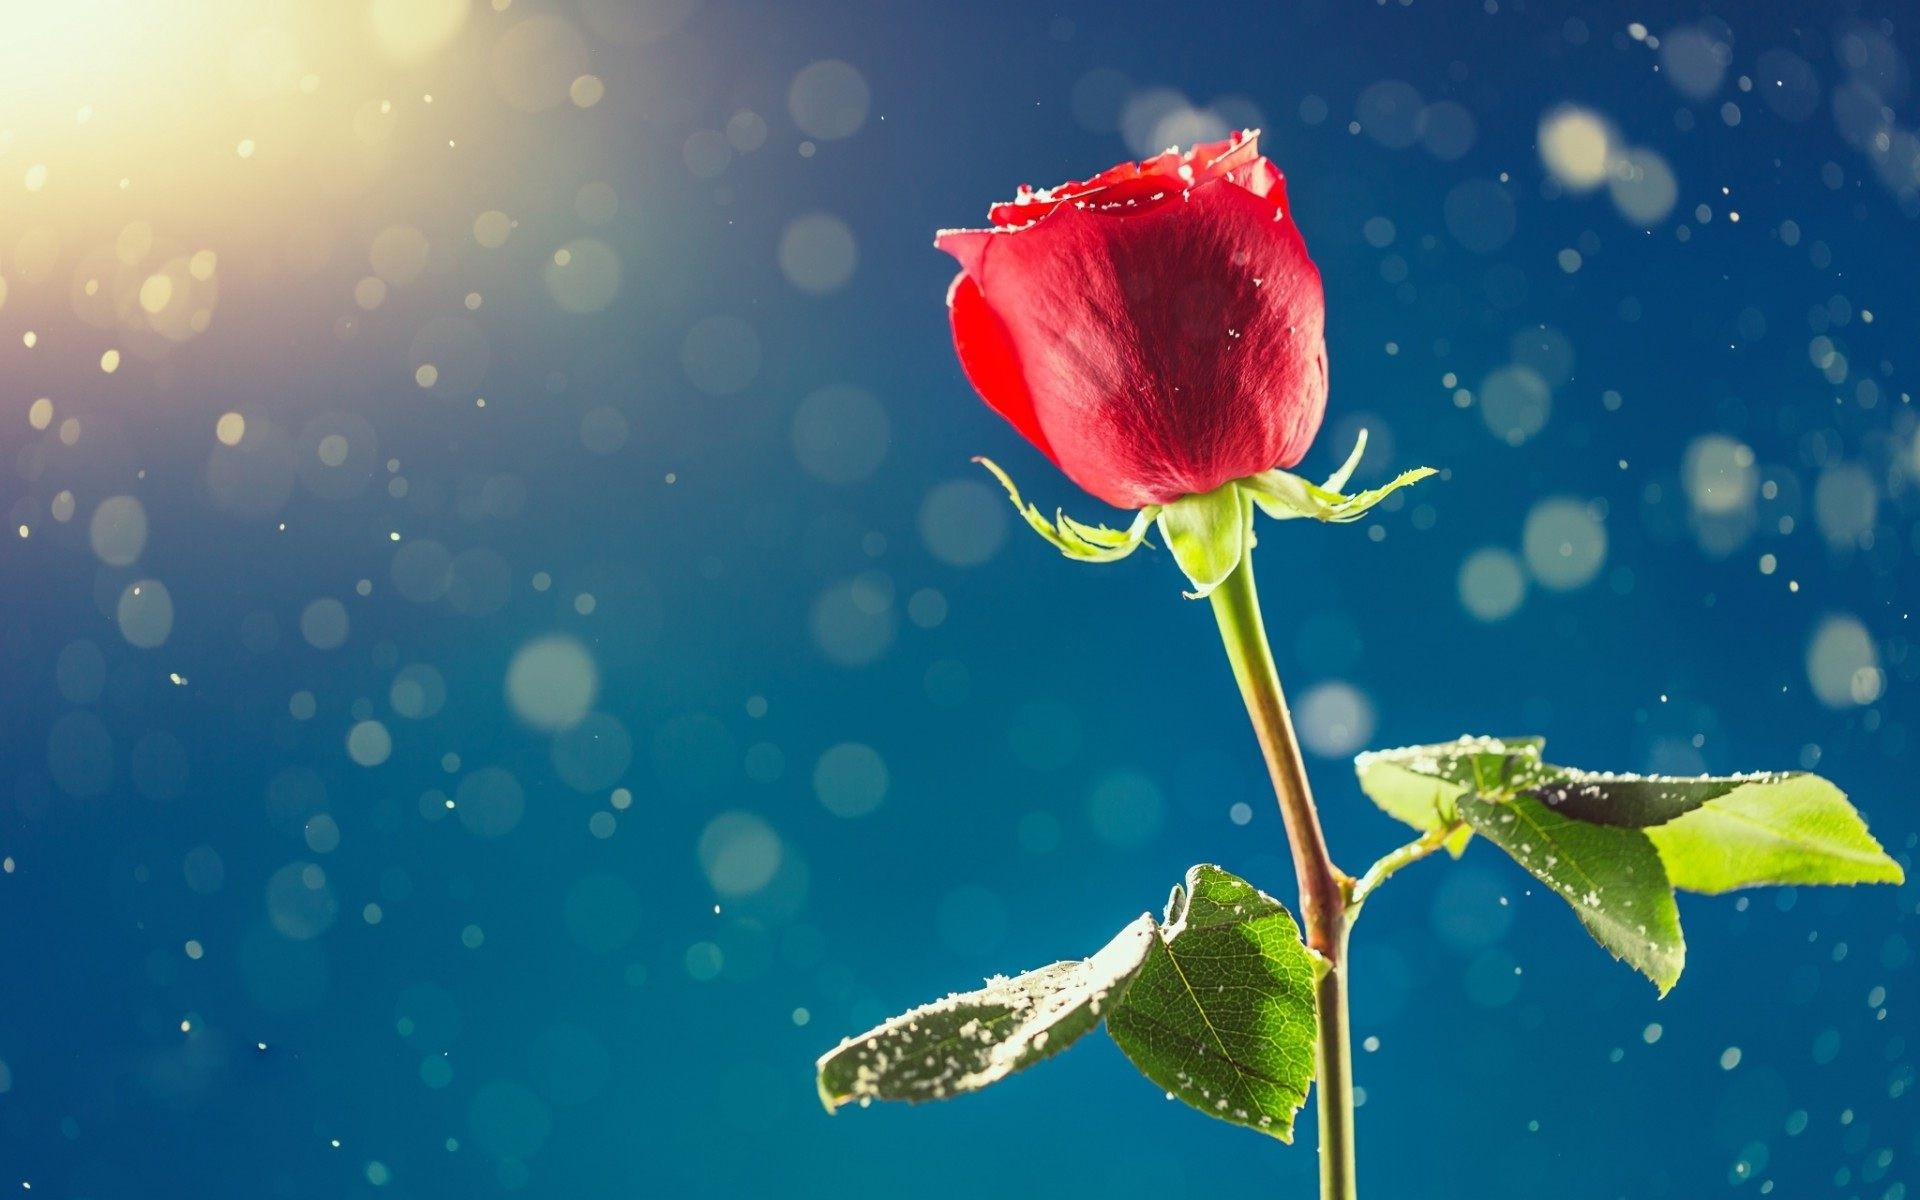 A Single Rose Wallpapers High Quality   Download Free